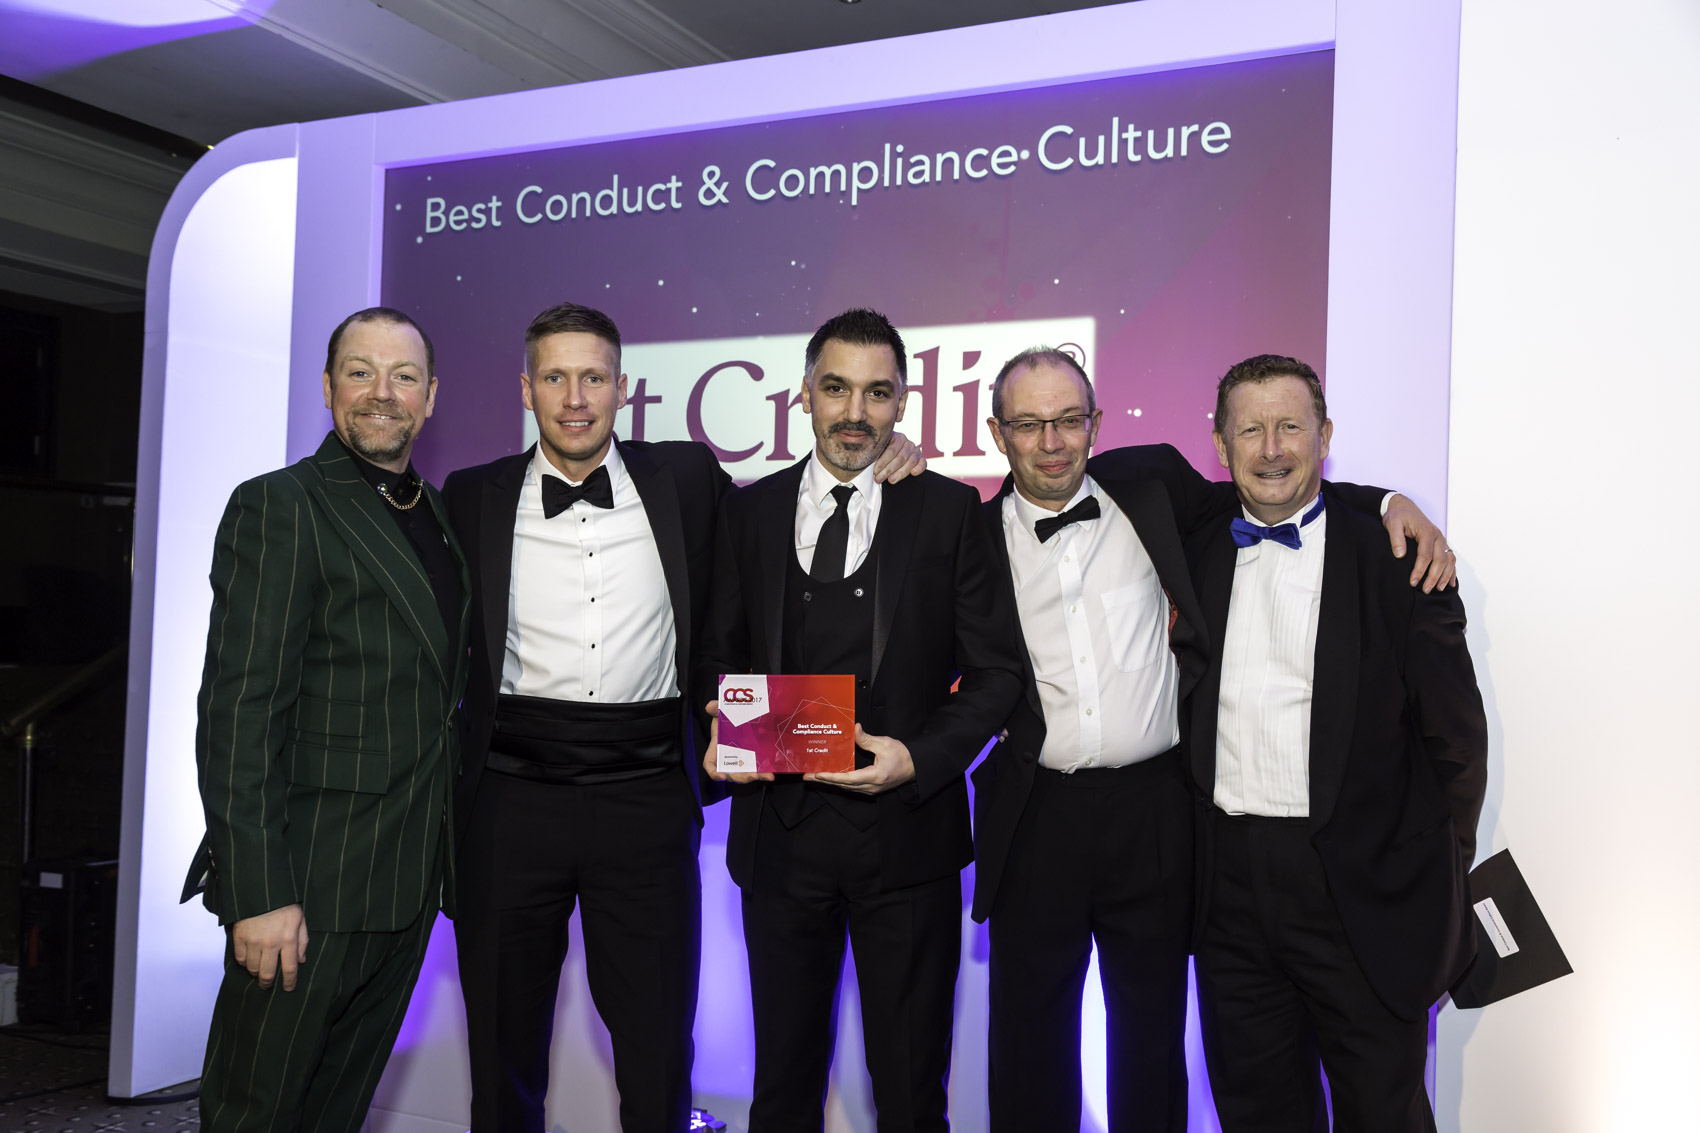 Winners CCS 2017 - 8 Best Conduct & Compliance Culture